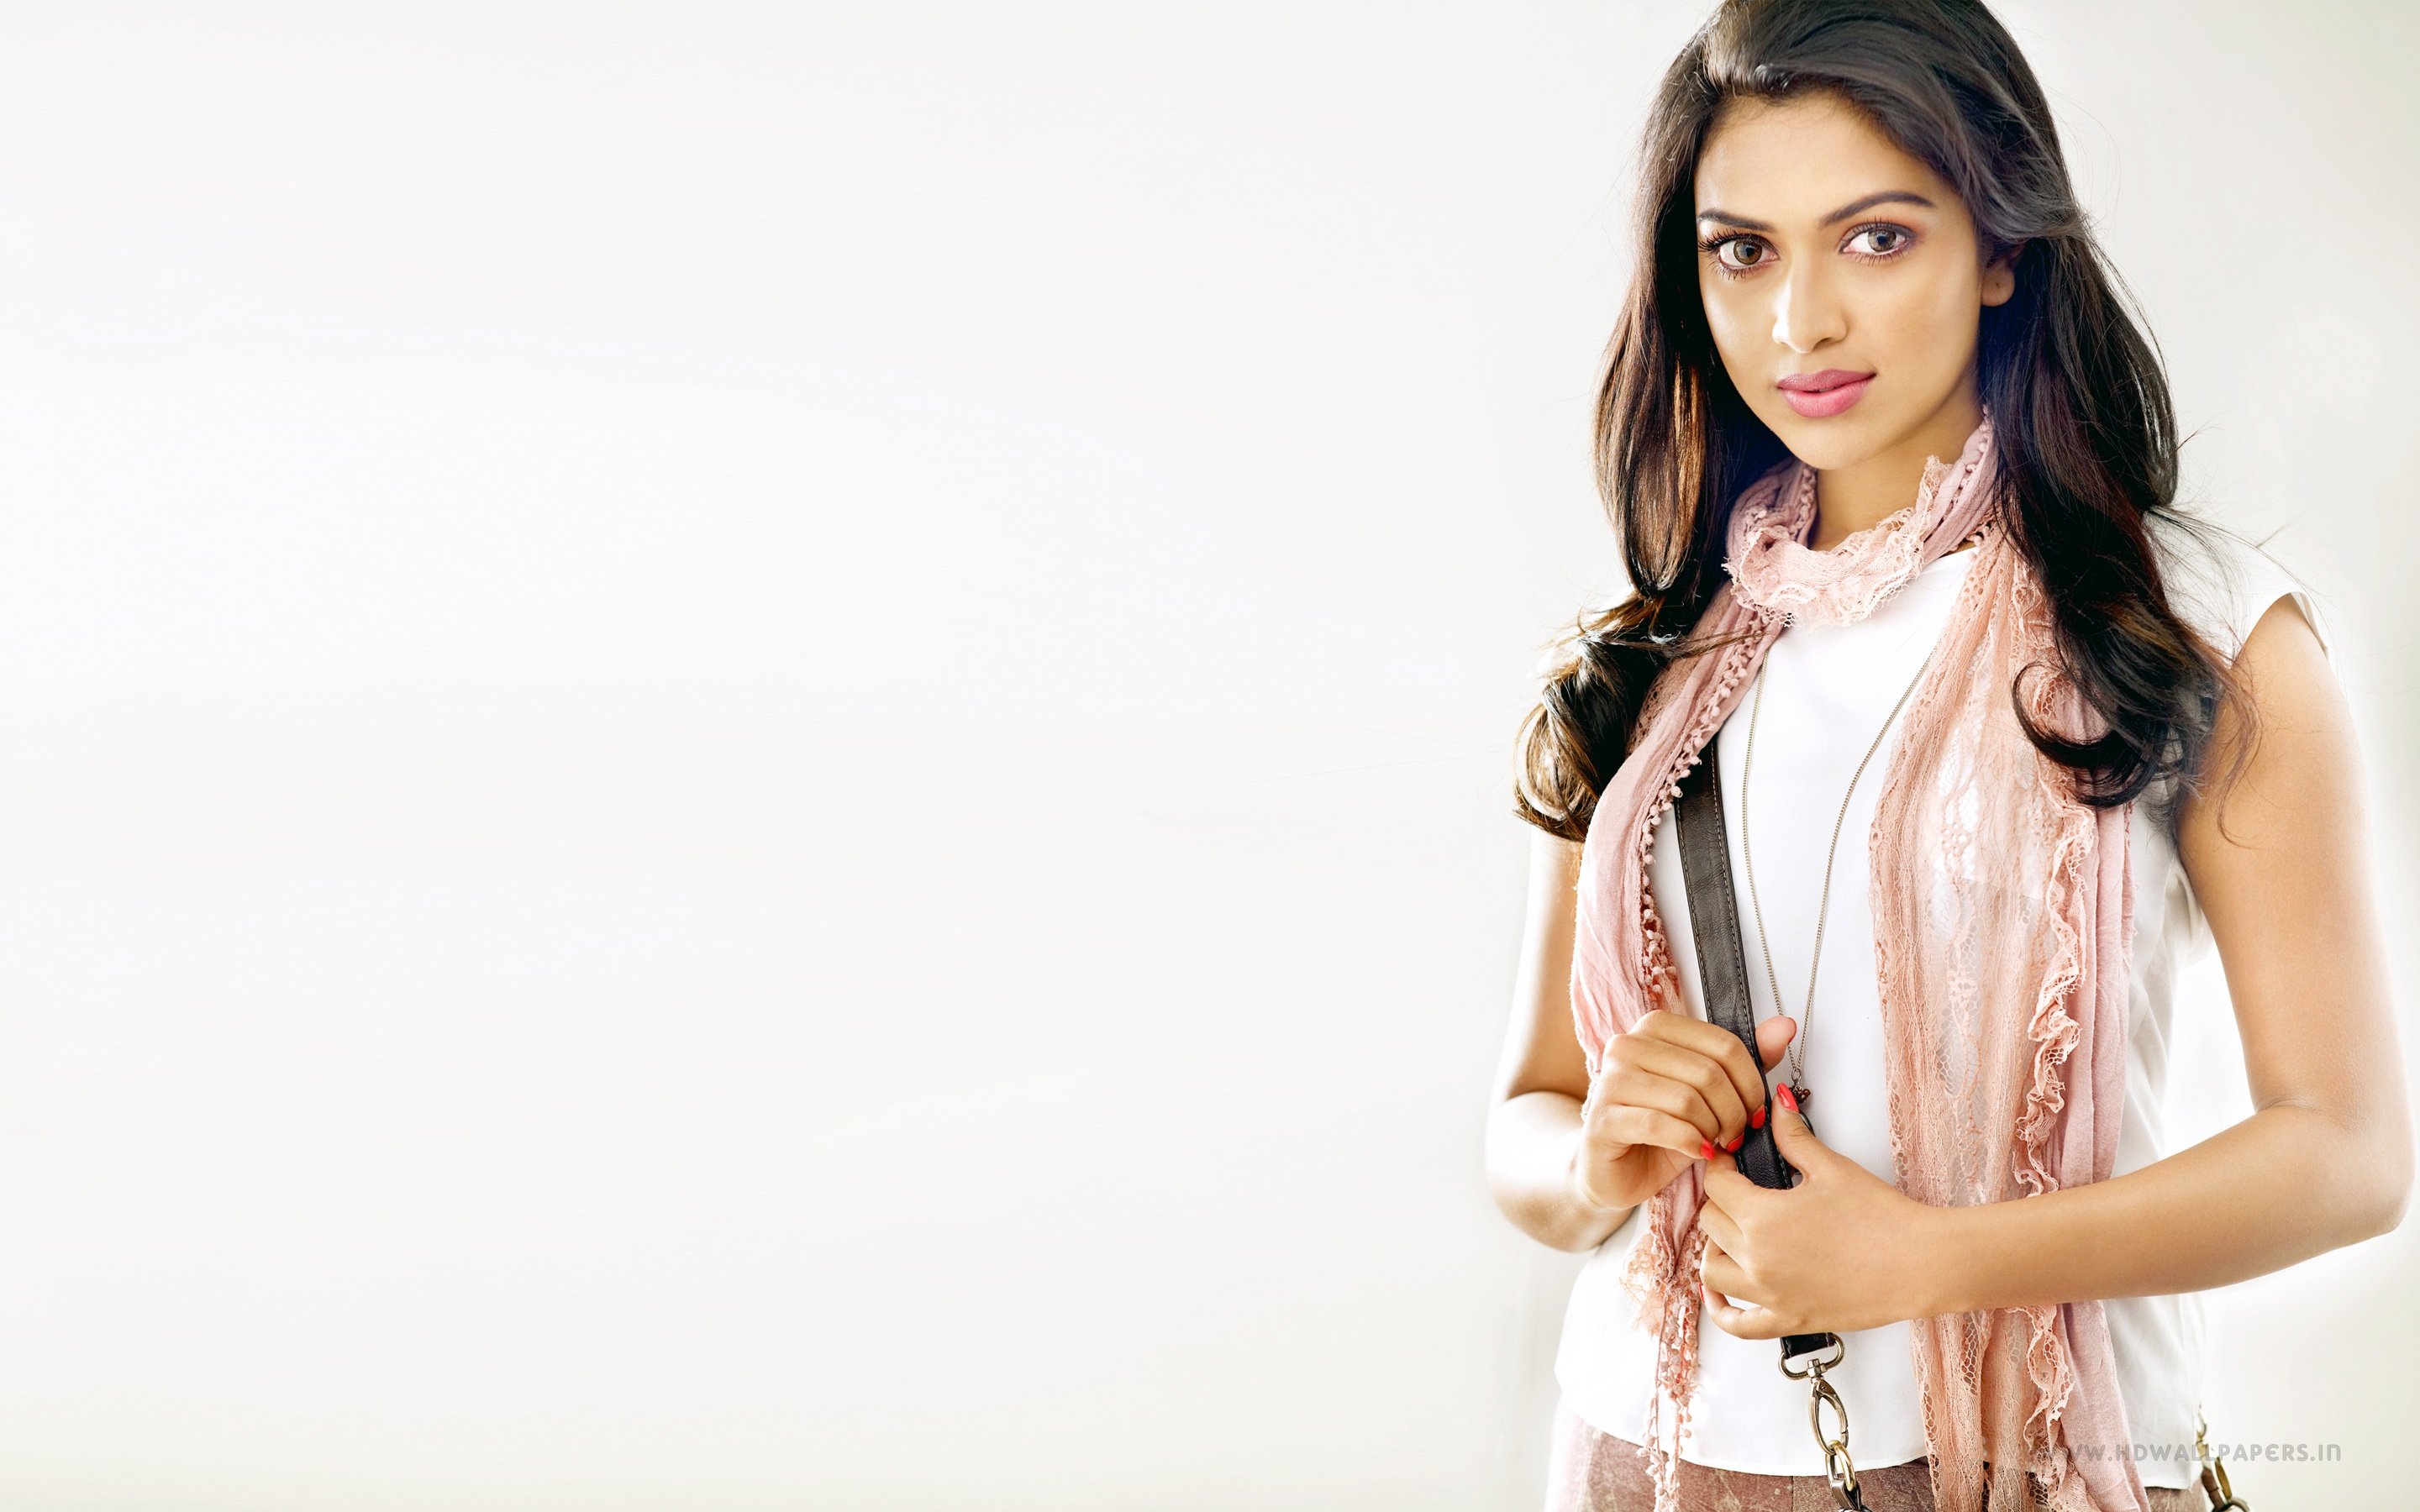 actress amala paul wallpapers in jpg format for free download